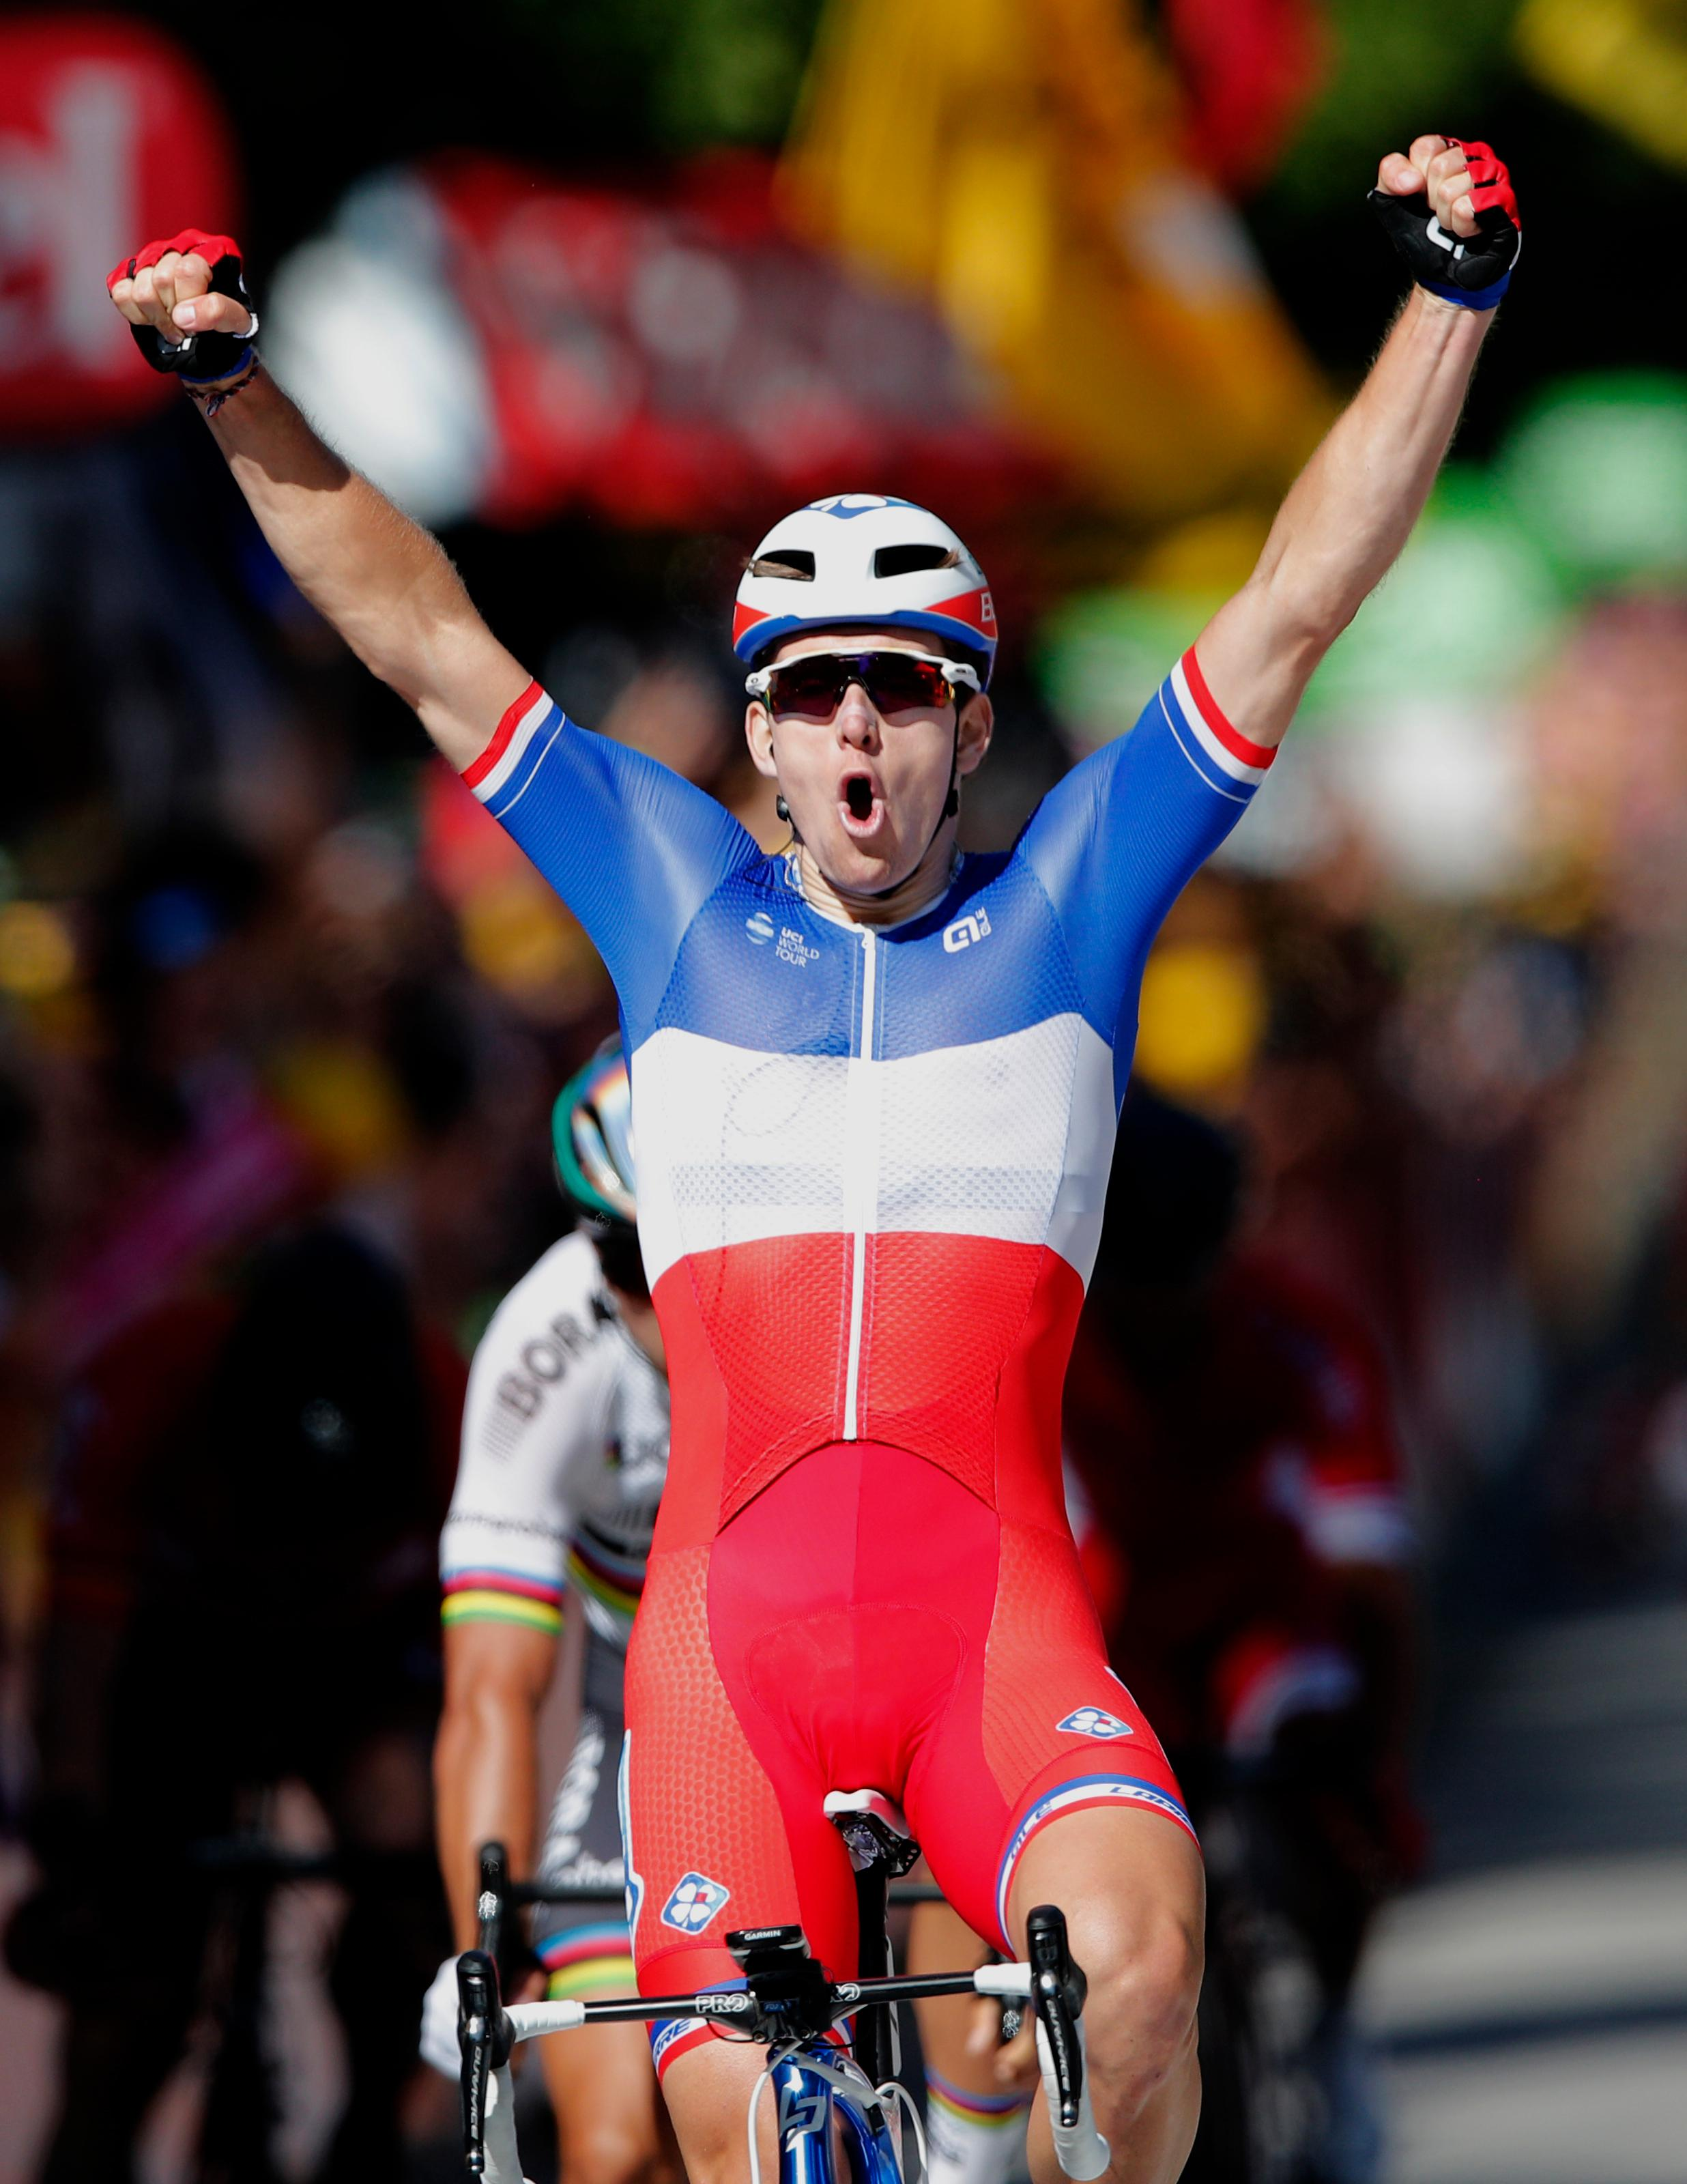 France's Arnaud Demare crosses the finish line to win the fourth stage of the Tour de France cycling race over 207.5 kilometers (129 miles) with start in Mondorf-les-Bains, Luxembourg, and finish in Vittel, France, , Tuesday, July 4, 2017. (AP Photo/Christophe Ena)